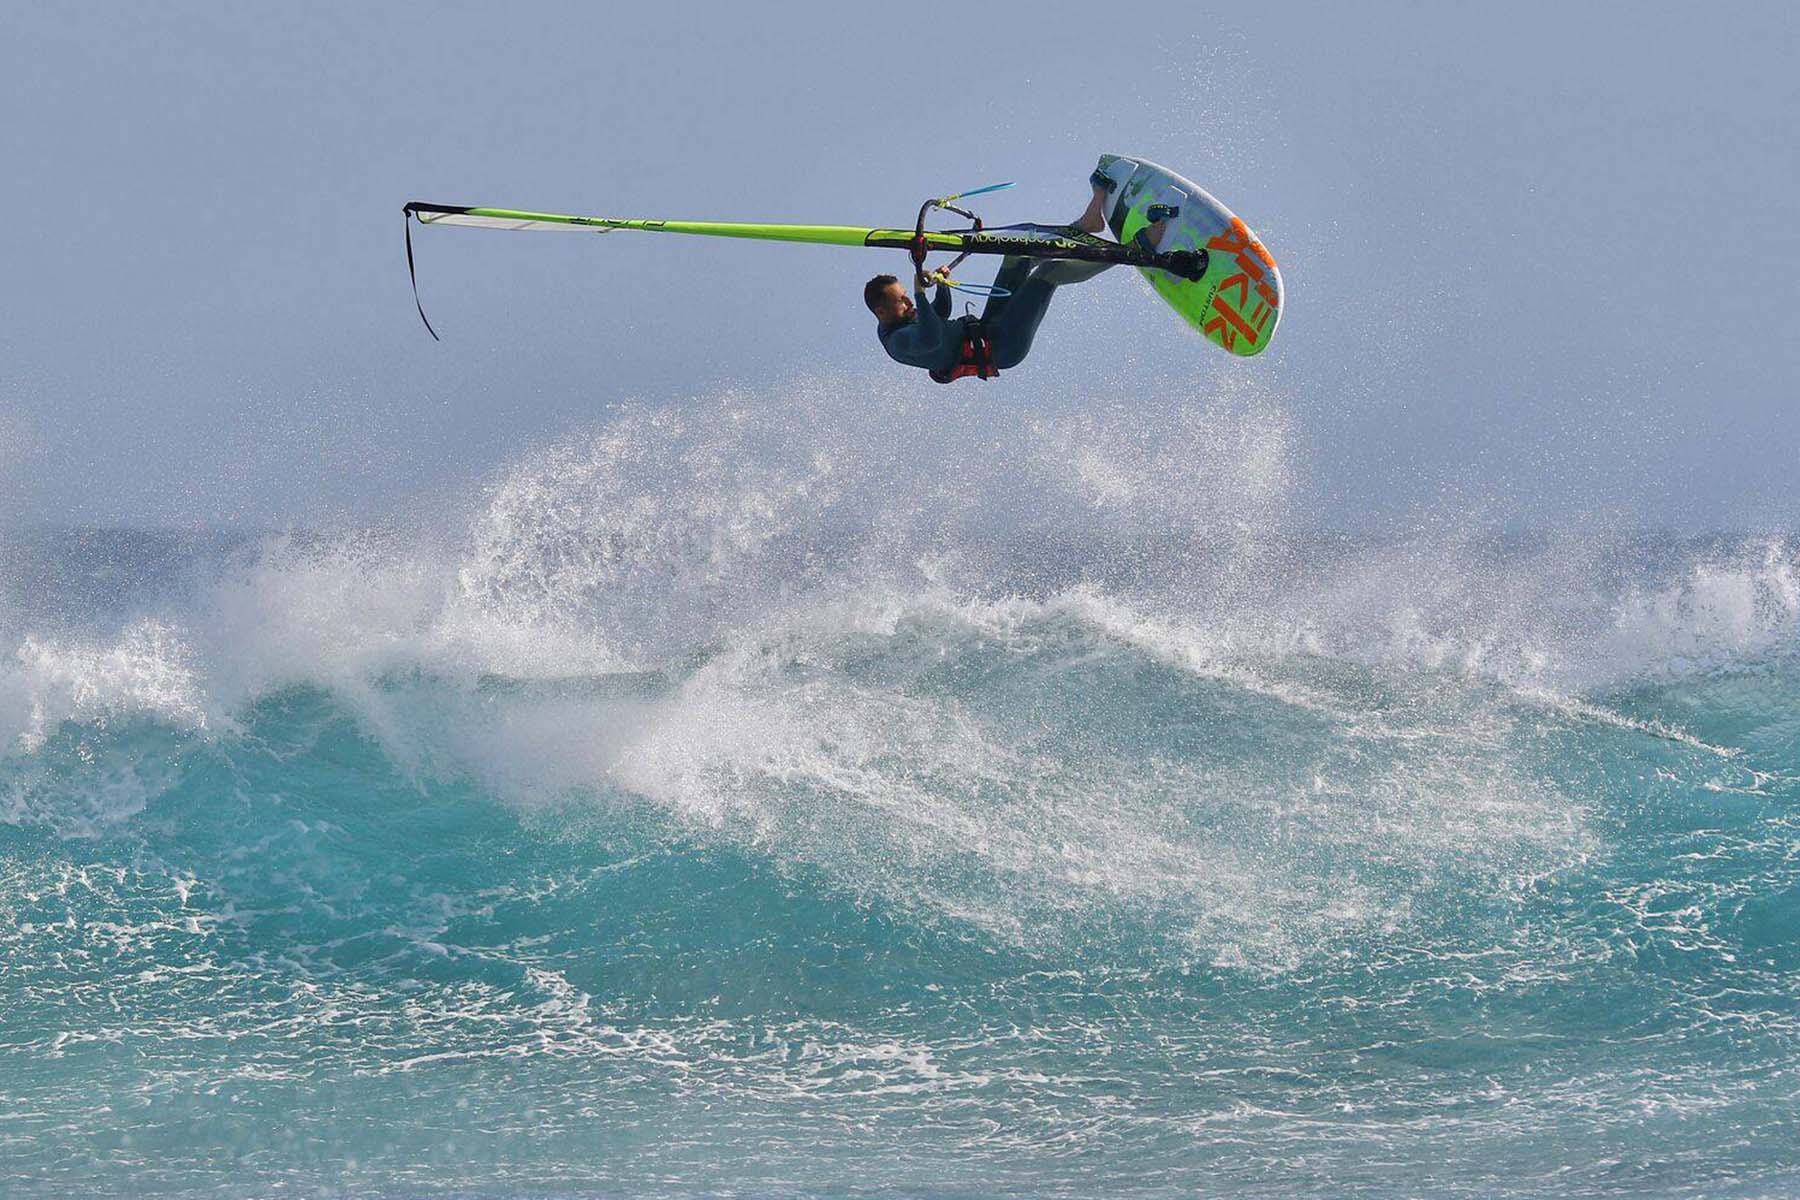 Dario-Ojeda-PWA-windsurf-Team-rider-Flikka-boards